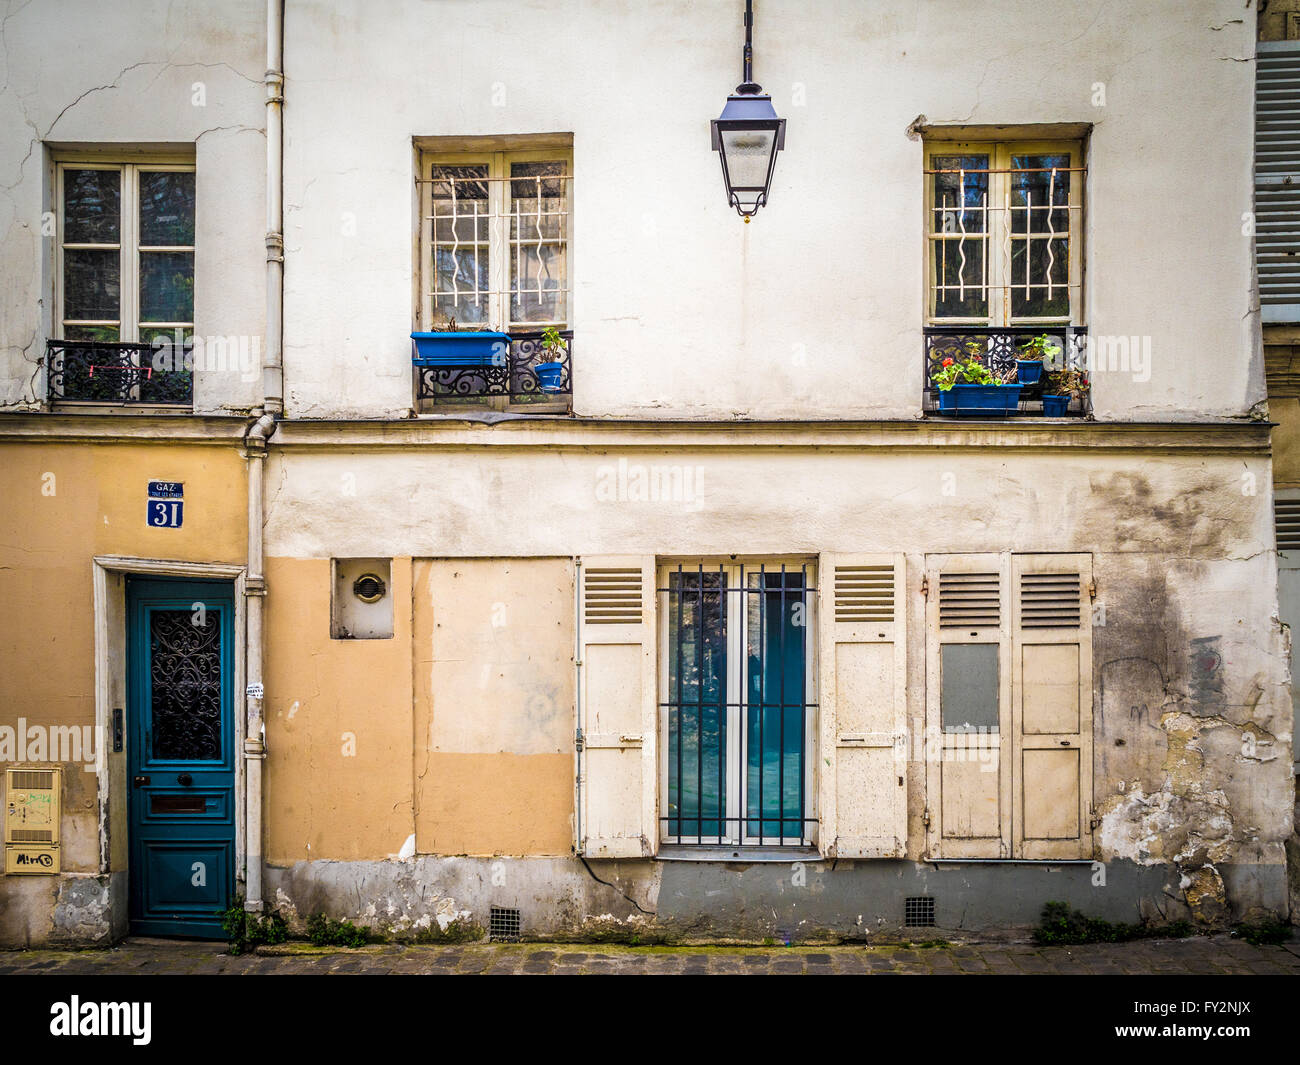 Traditional building, Paris, France - Stock Image